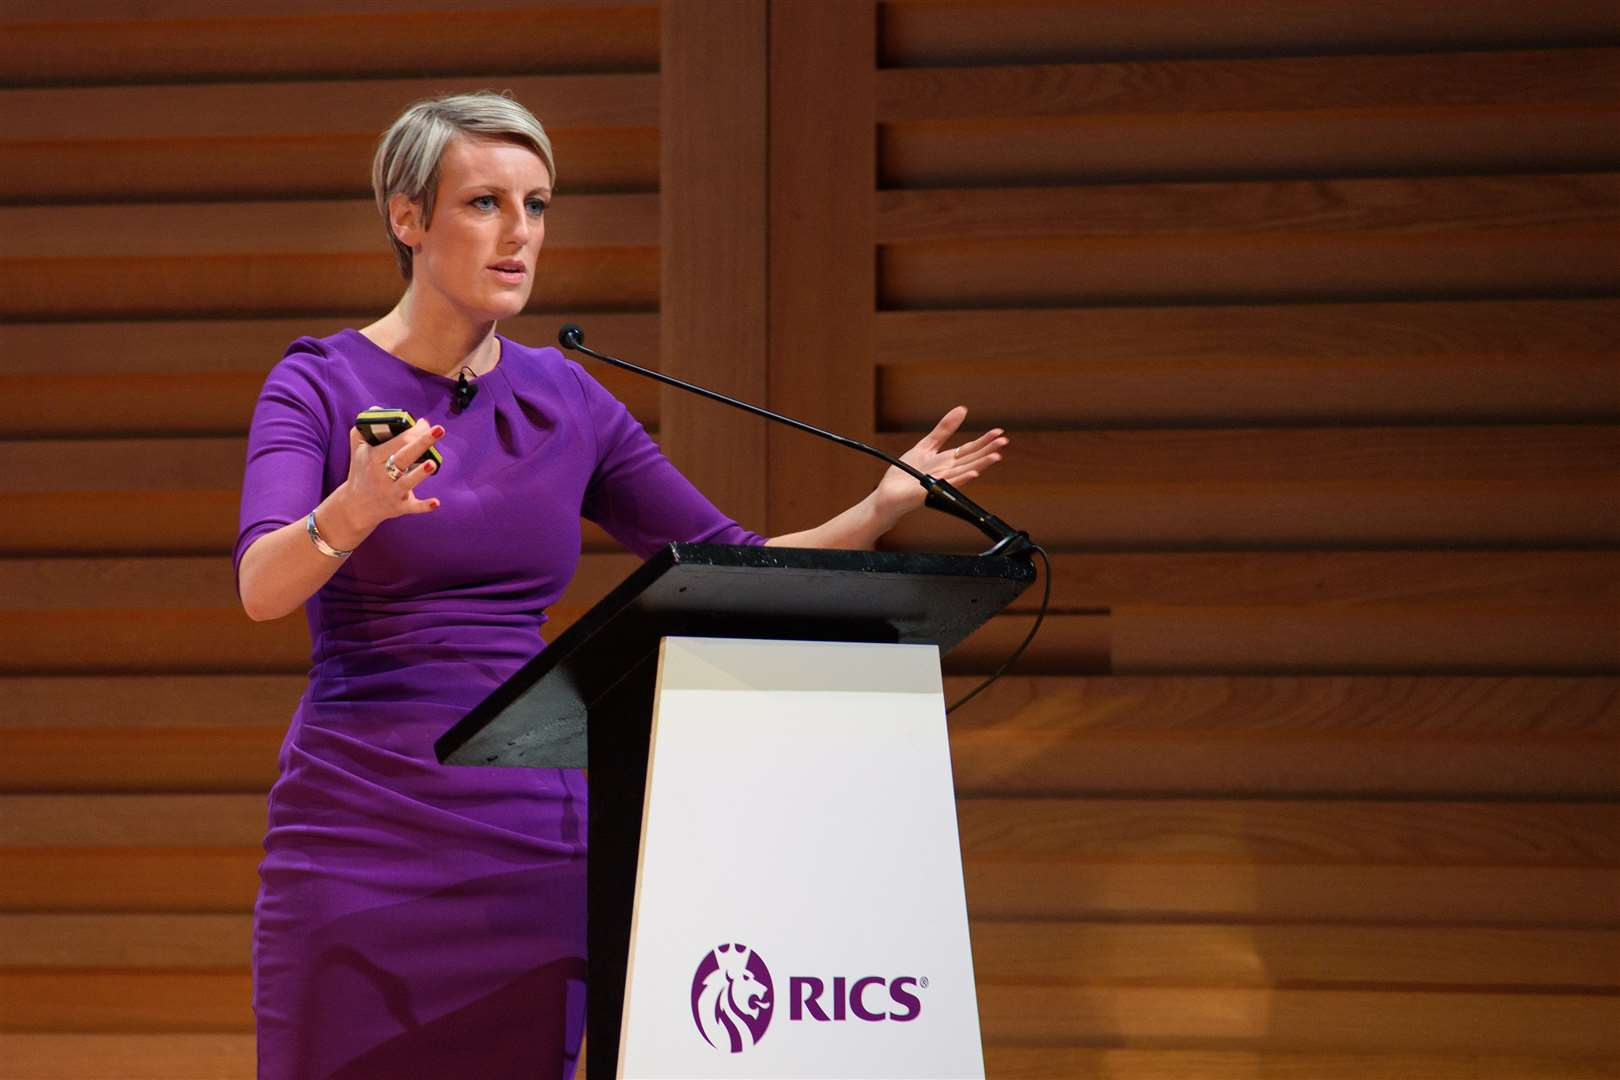 BBC broadcaster Steph McGovern will be the keynote speaker at Kent Vision Live